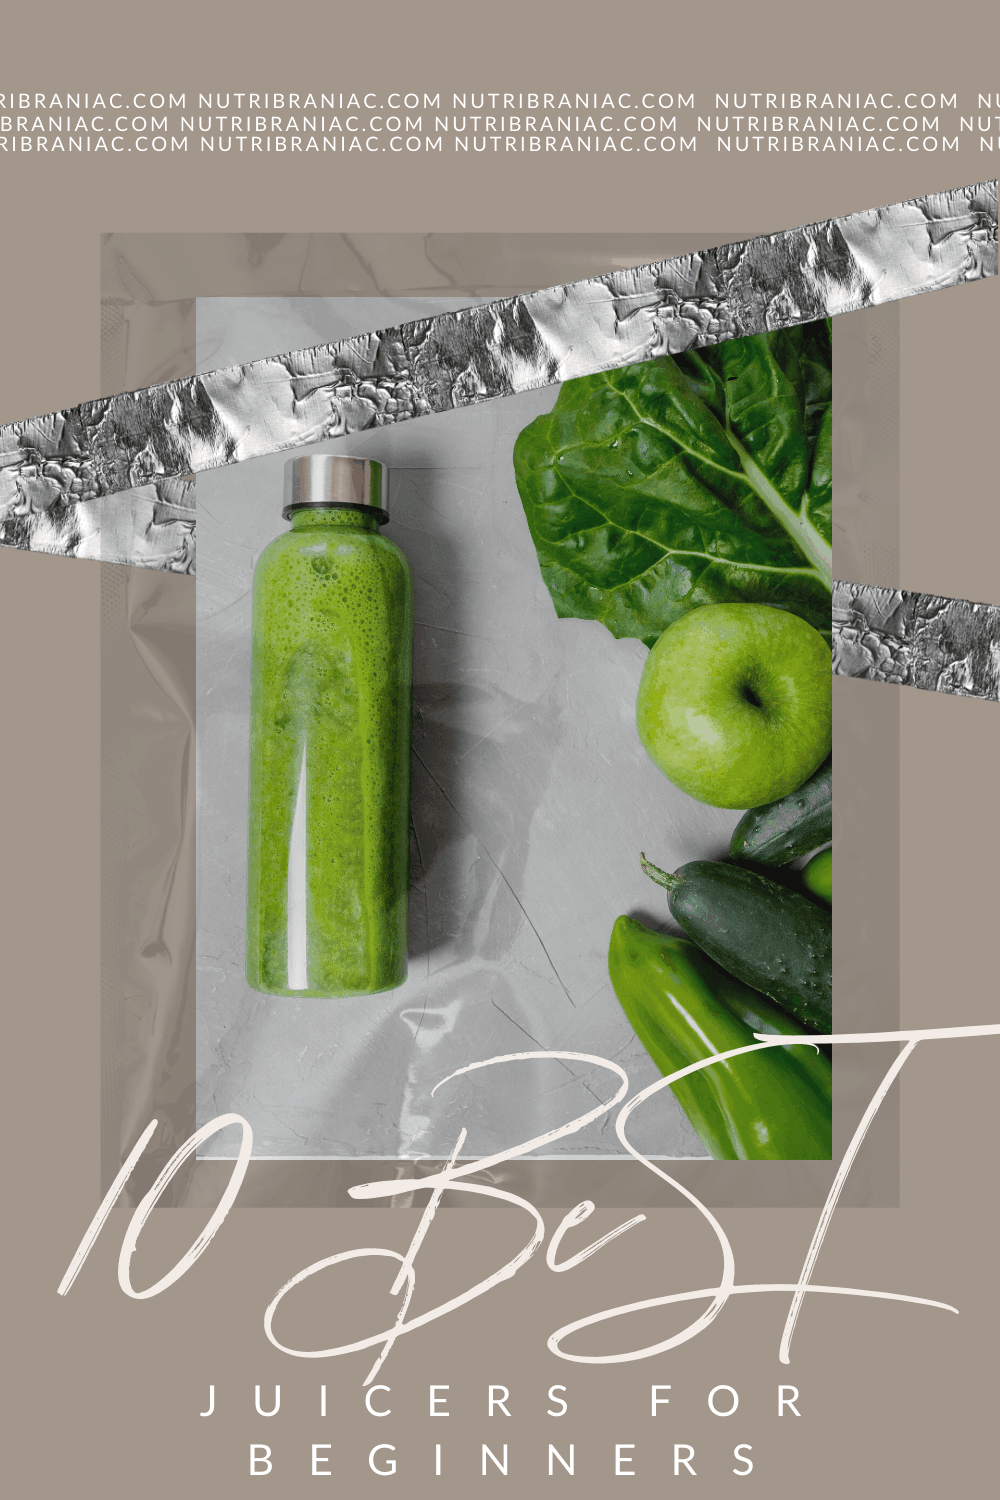 "Image of a glass bottle of a green juice next to vegetables with text overlay ""10 Best Juicers for Beginners"""